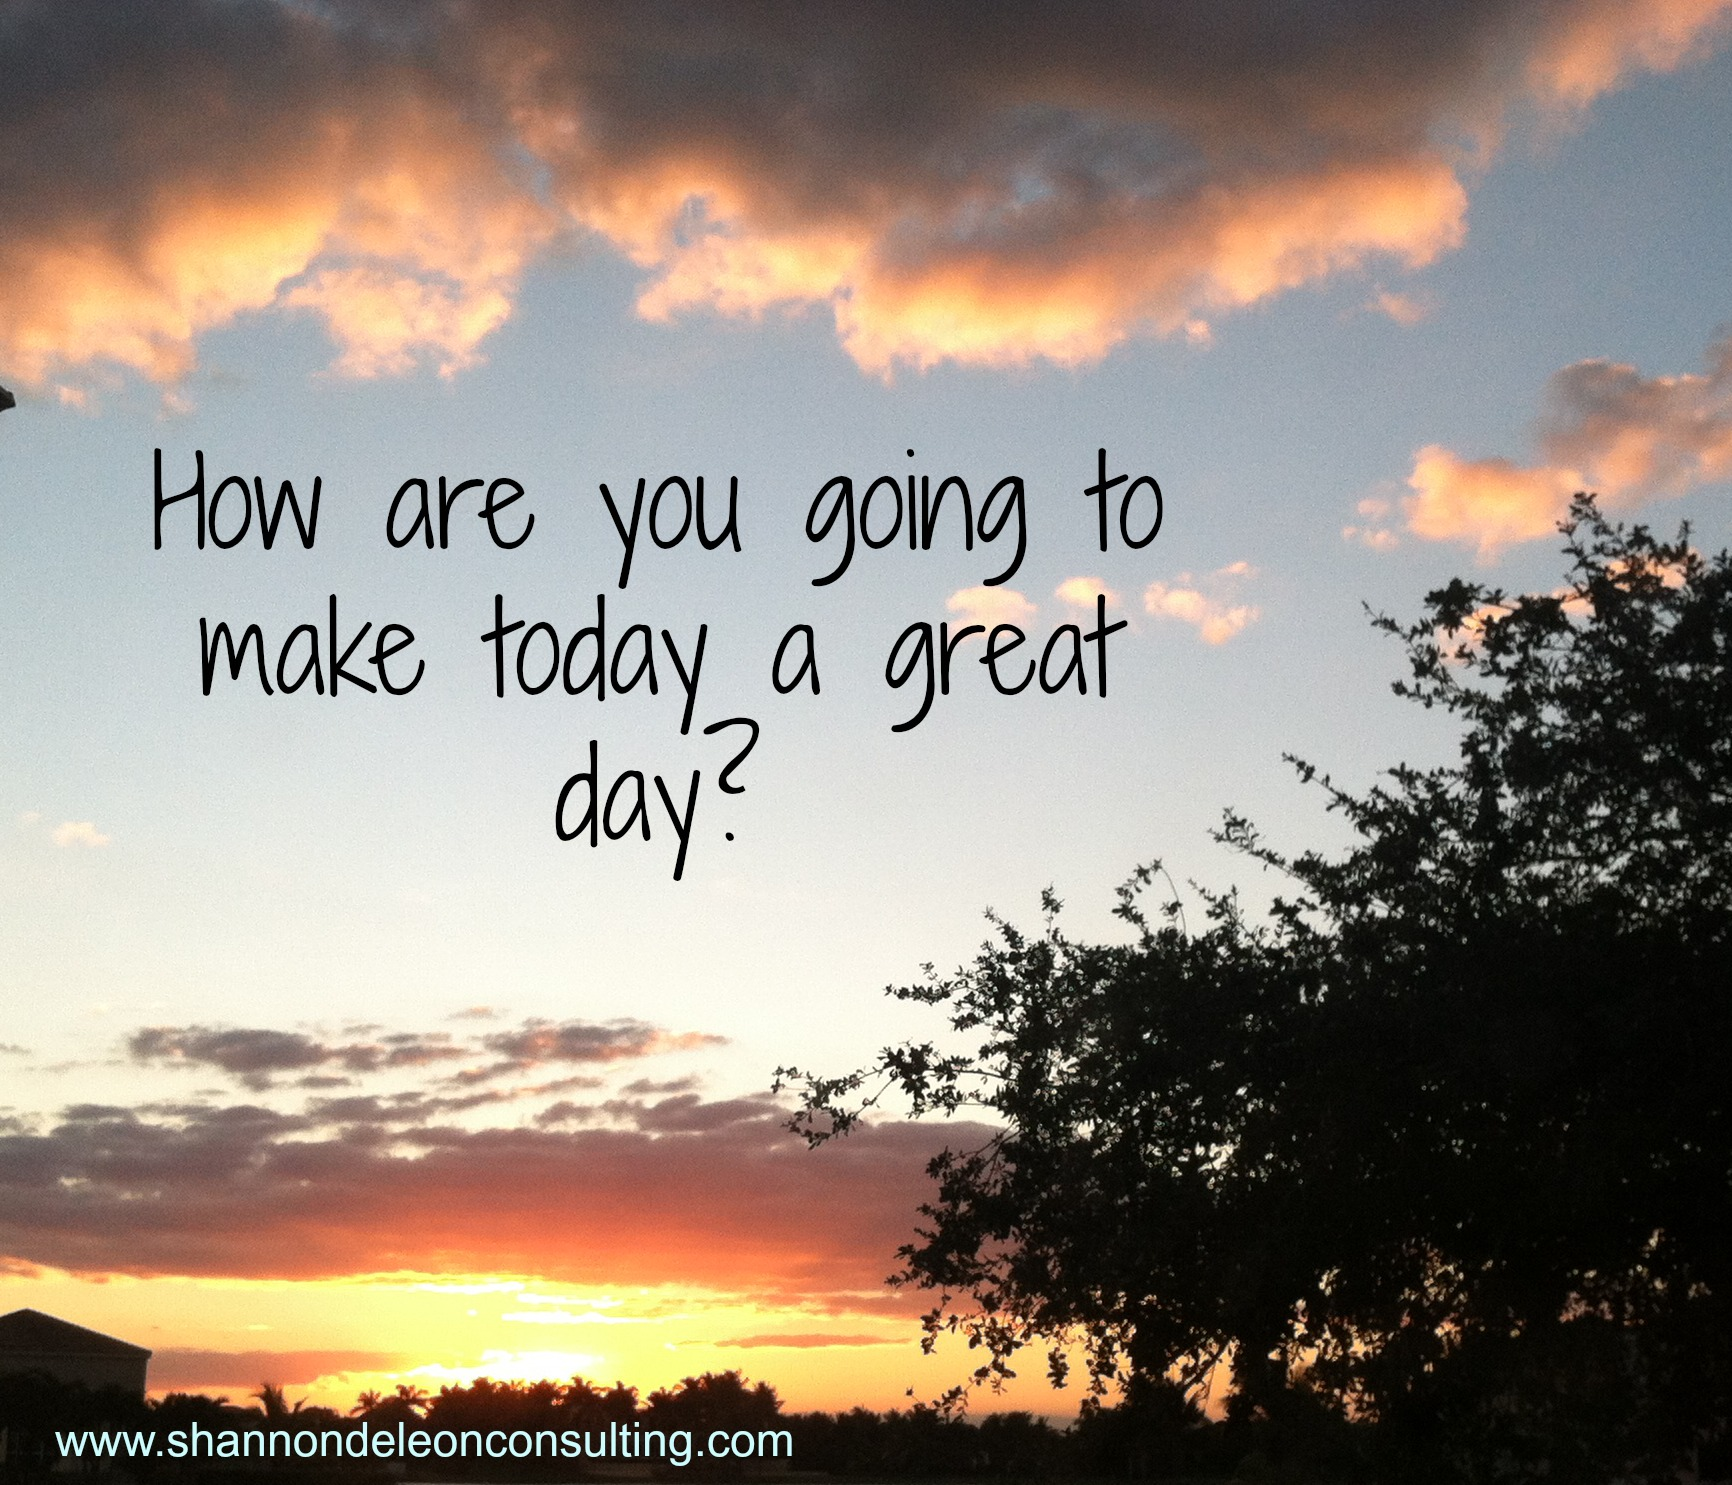 https://cdn.quotesgram.com/img/45/8/847761172-Make-today-a-great-day.jpg